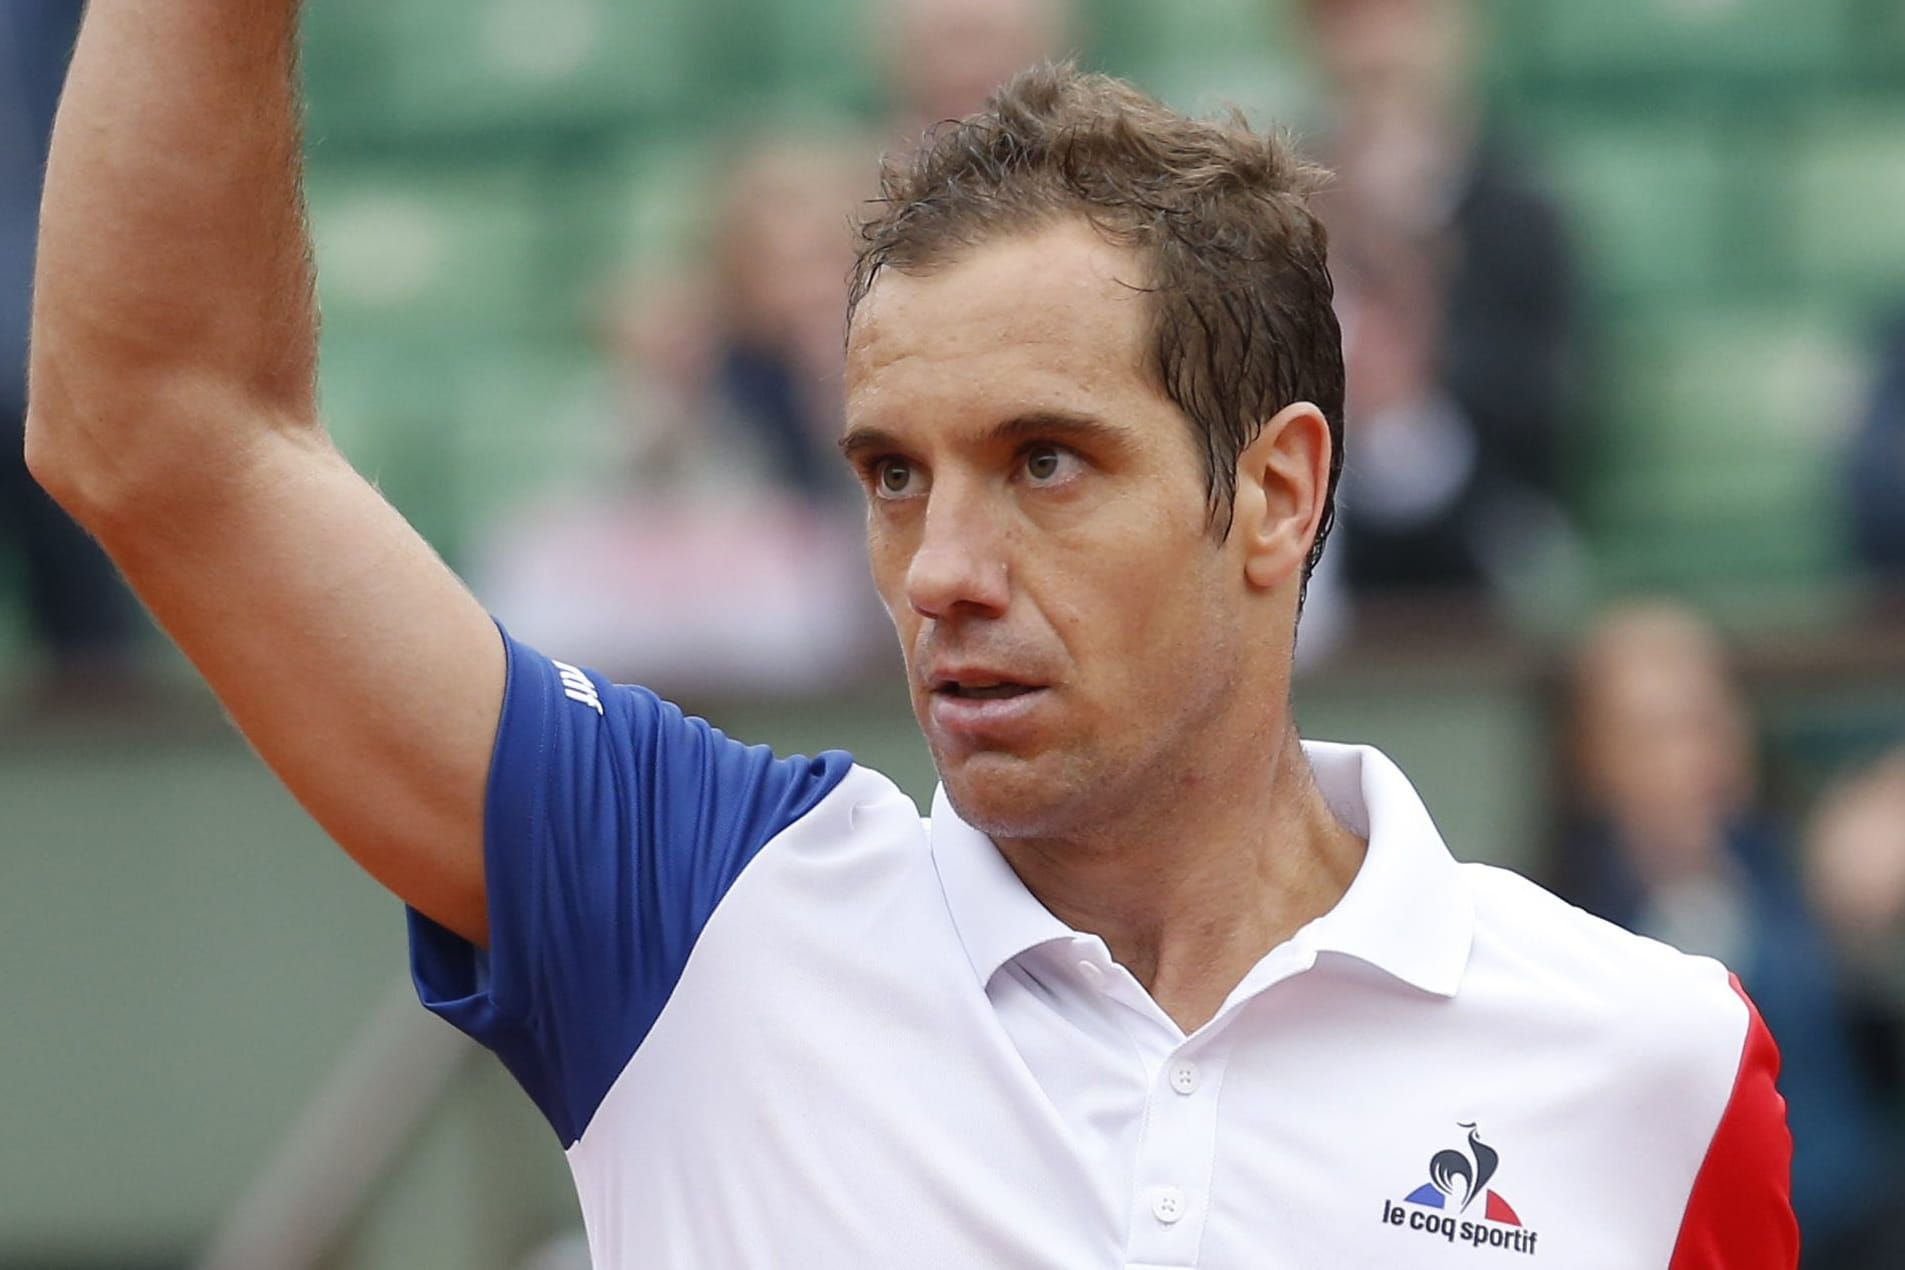 gasquet dating Related richard gasquet sparks engagement rumor the couple is said to have exchanged vows in an intimate morning ceremony at a secret location, before few close friends and family members twitter reactions to rumored wedding.